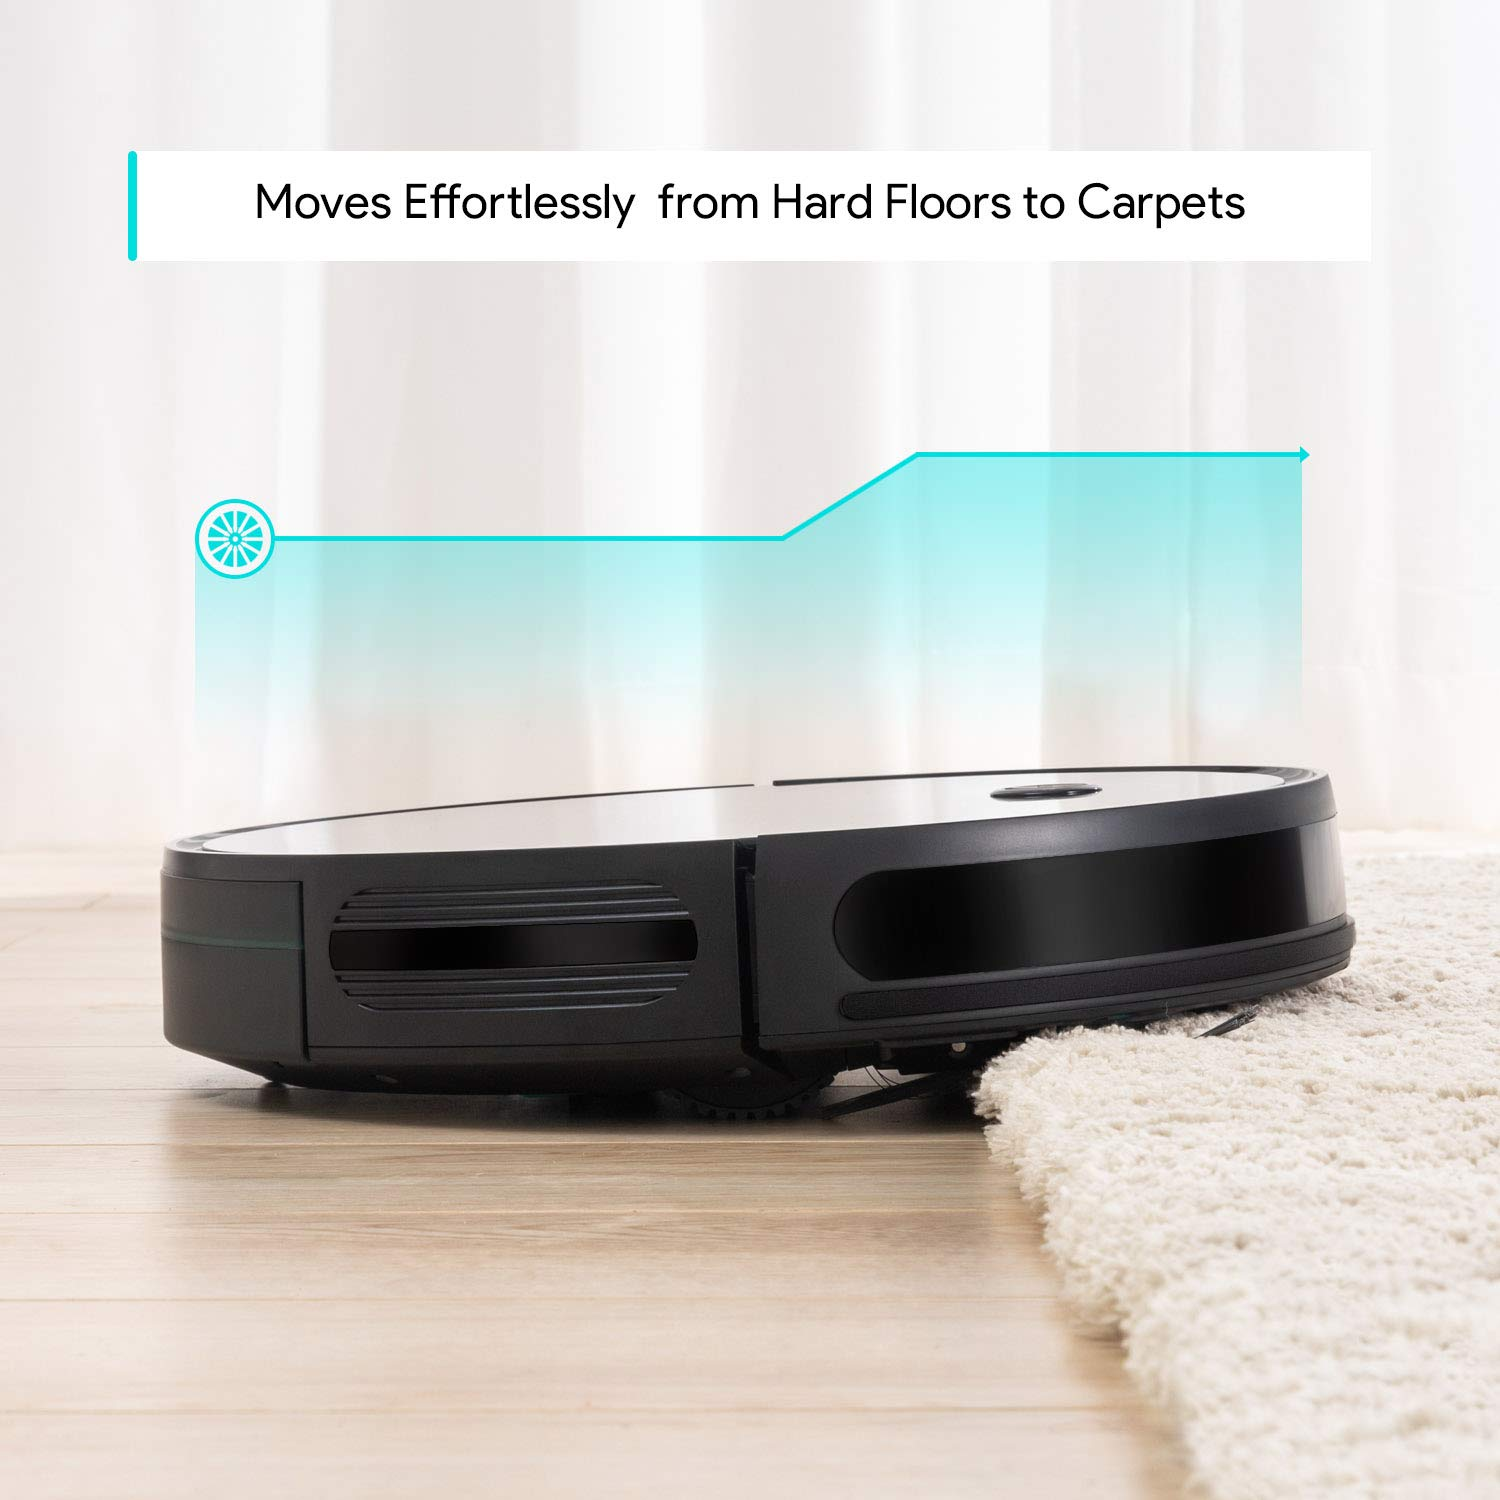 The Deenkee robot cleaner moving effortlessly from carpets and hard floors